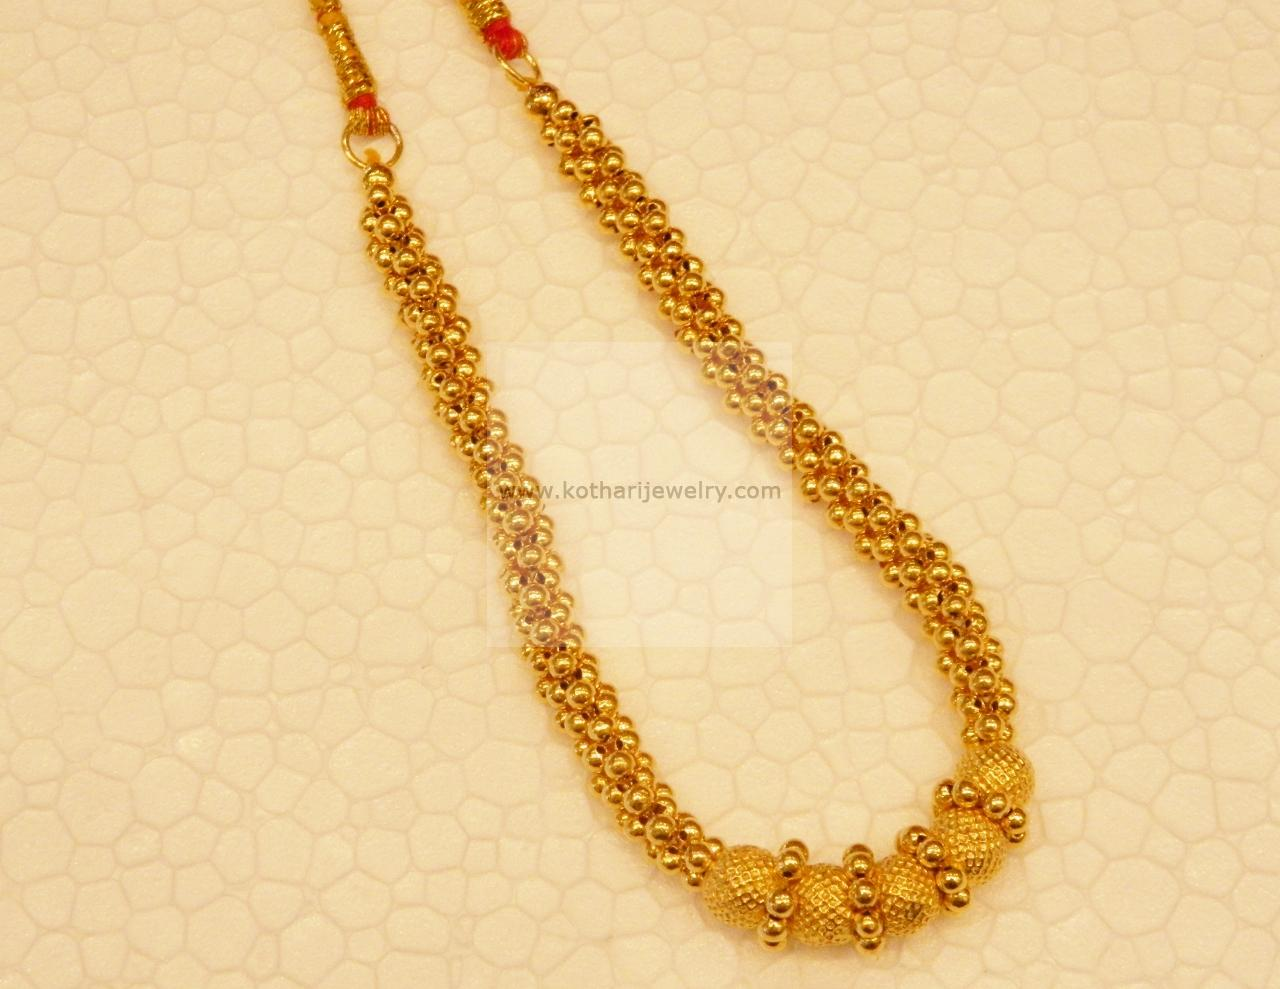 Light Weight Gifting Gold Necklace